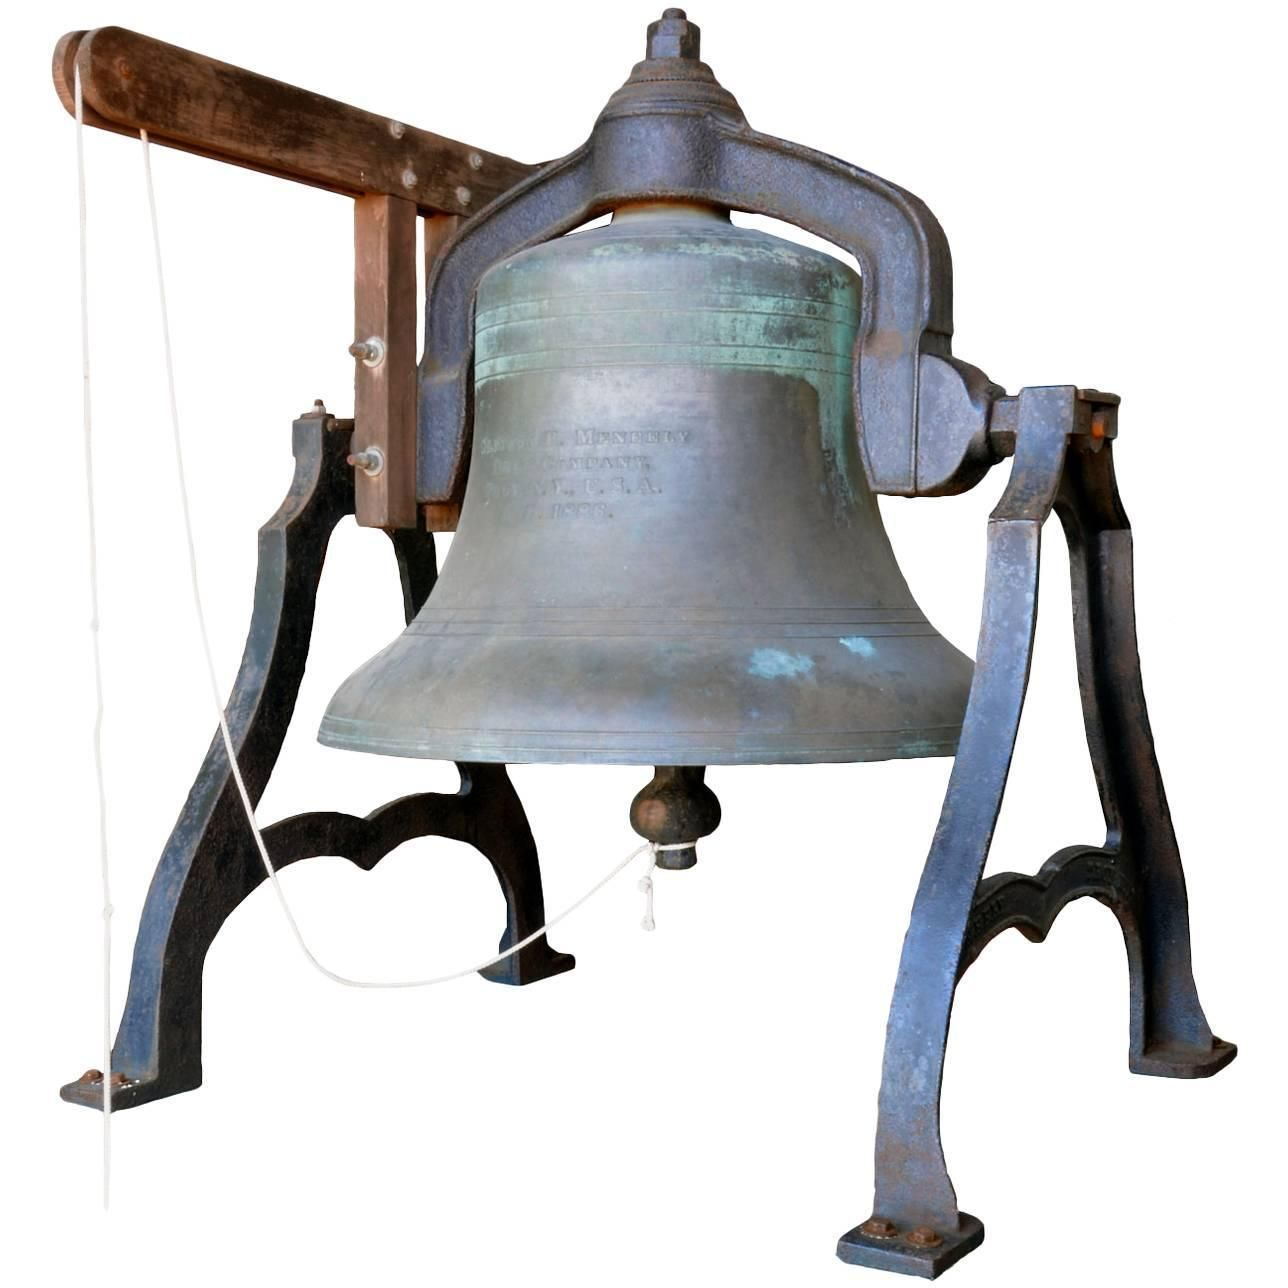 Early American Solid Bronze Bell with Decorative Cast Iron Support